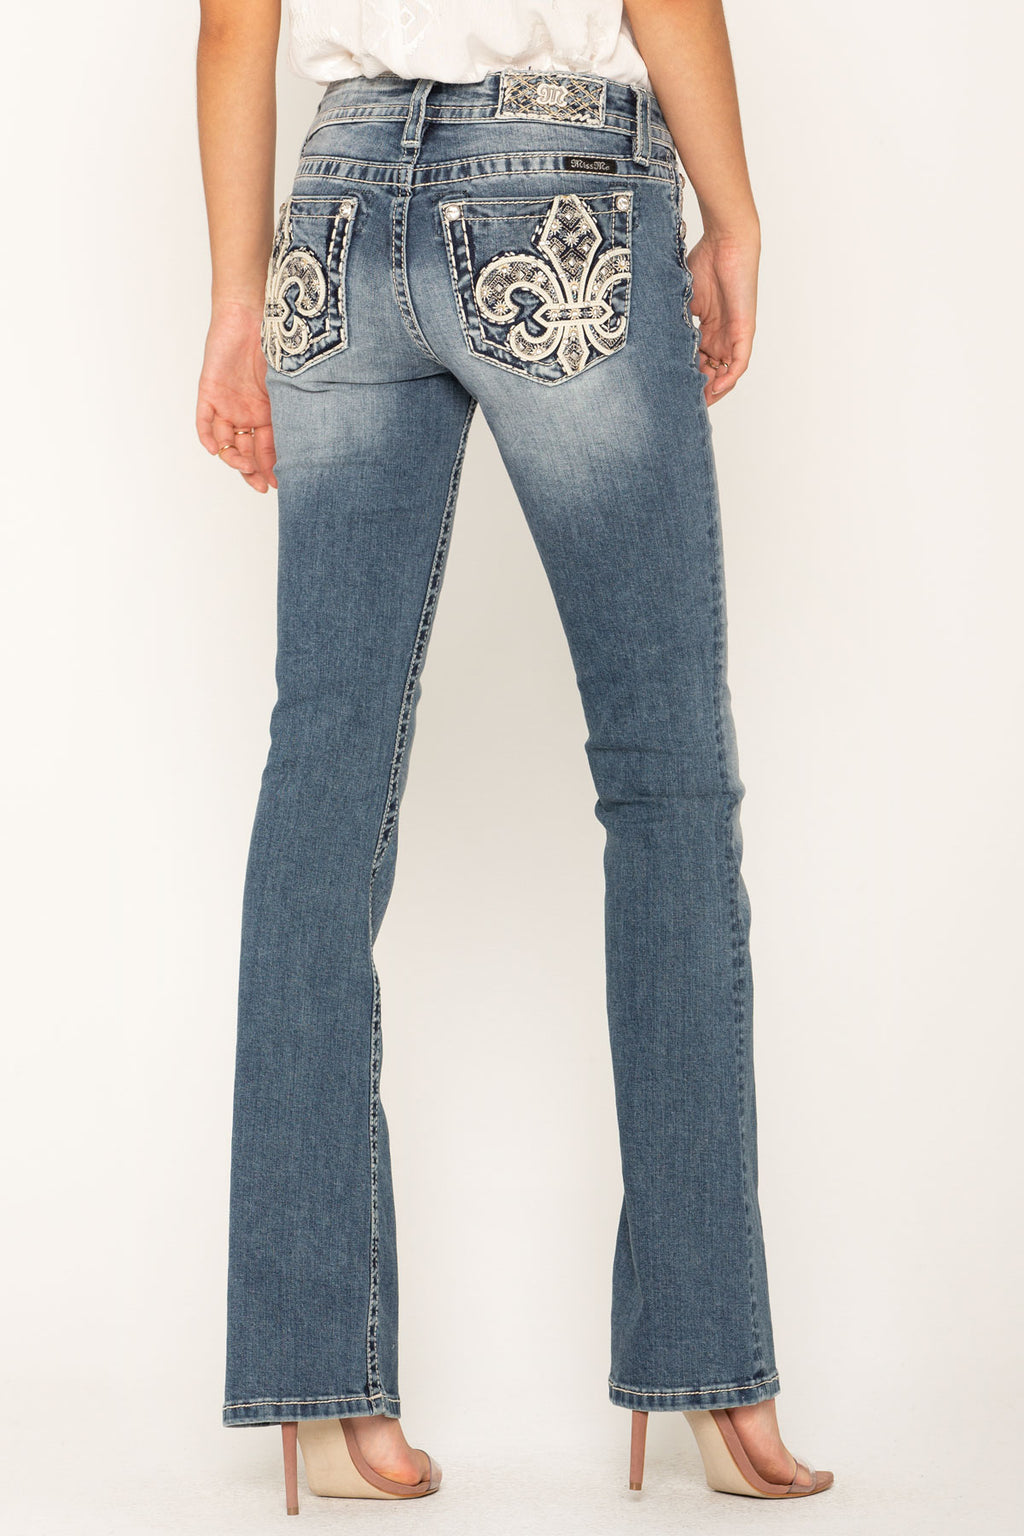 7cf378f5a31 SILVER PLATTER BOOTCUT JEANS